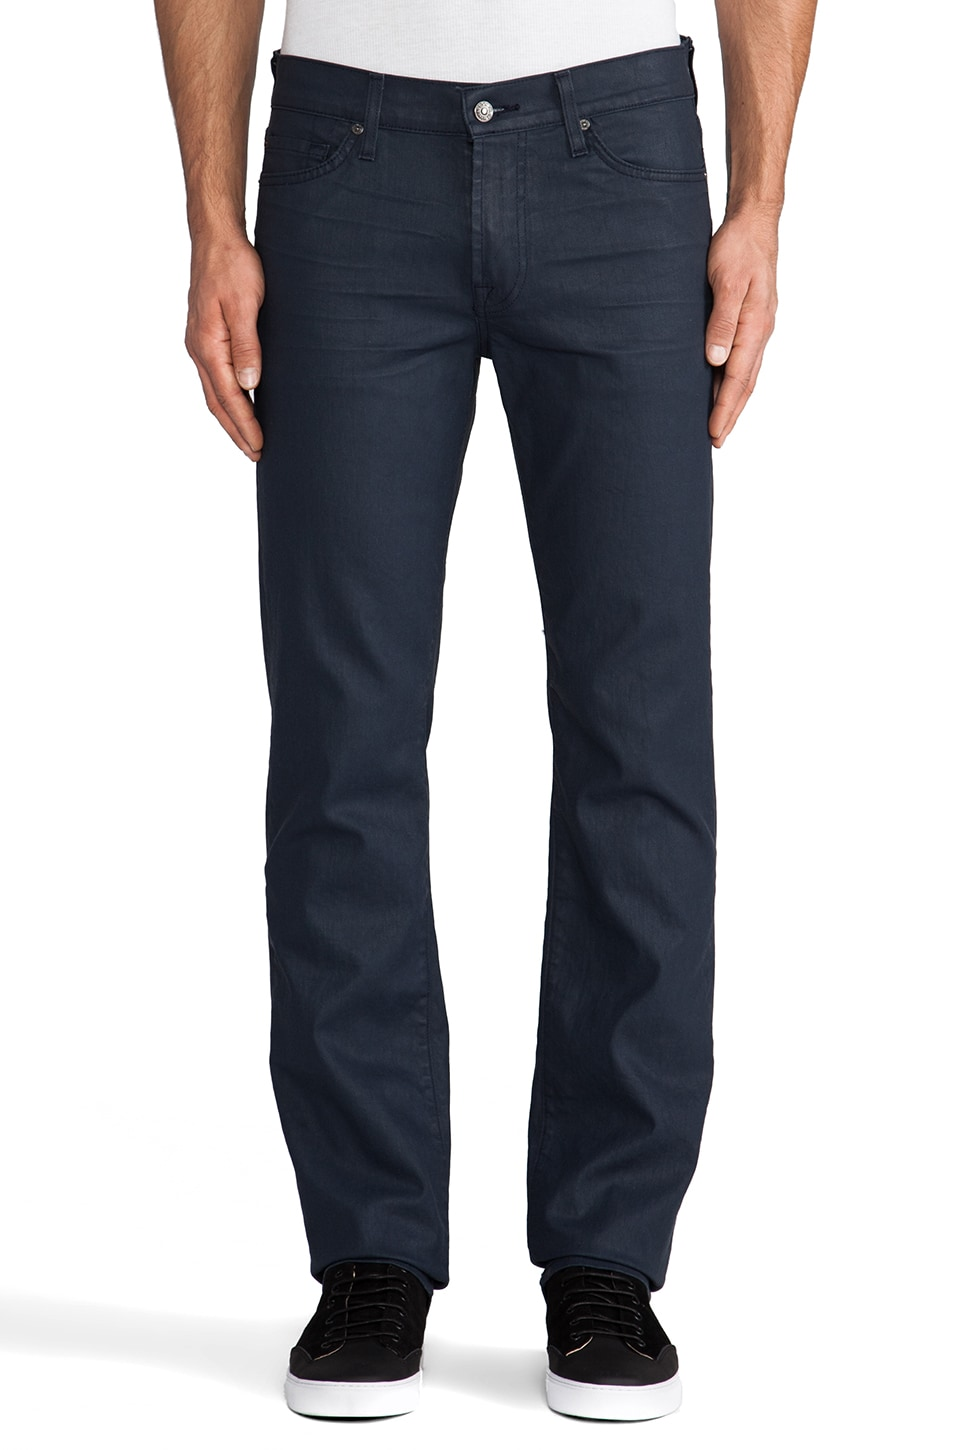 7 For All Mankind Slimmy in Petrol Blue